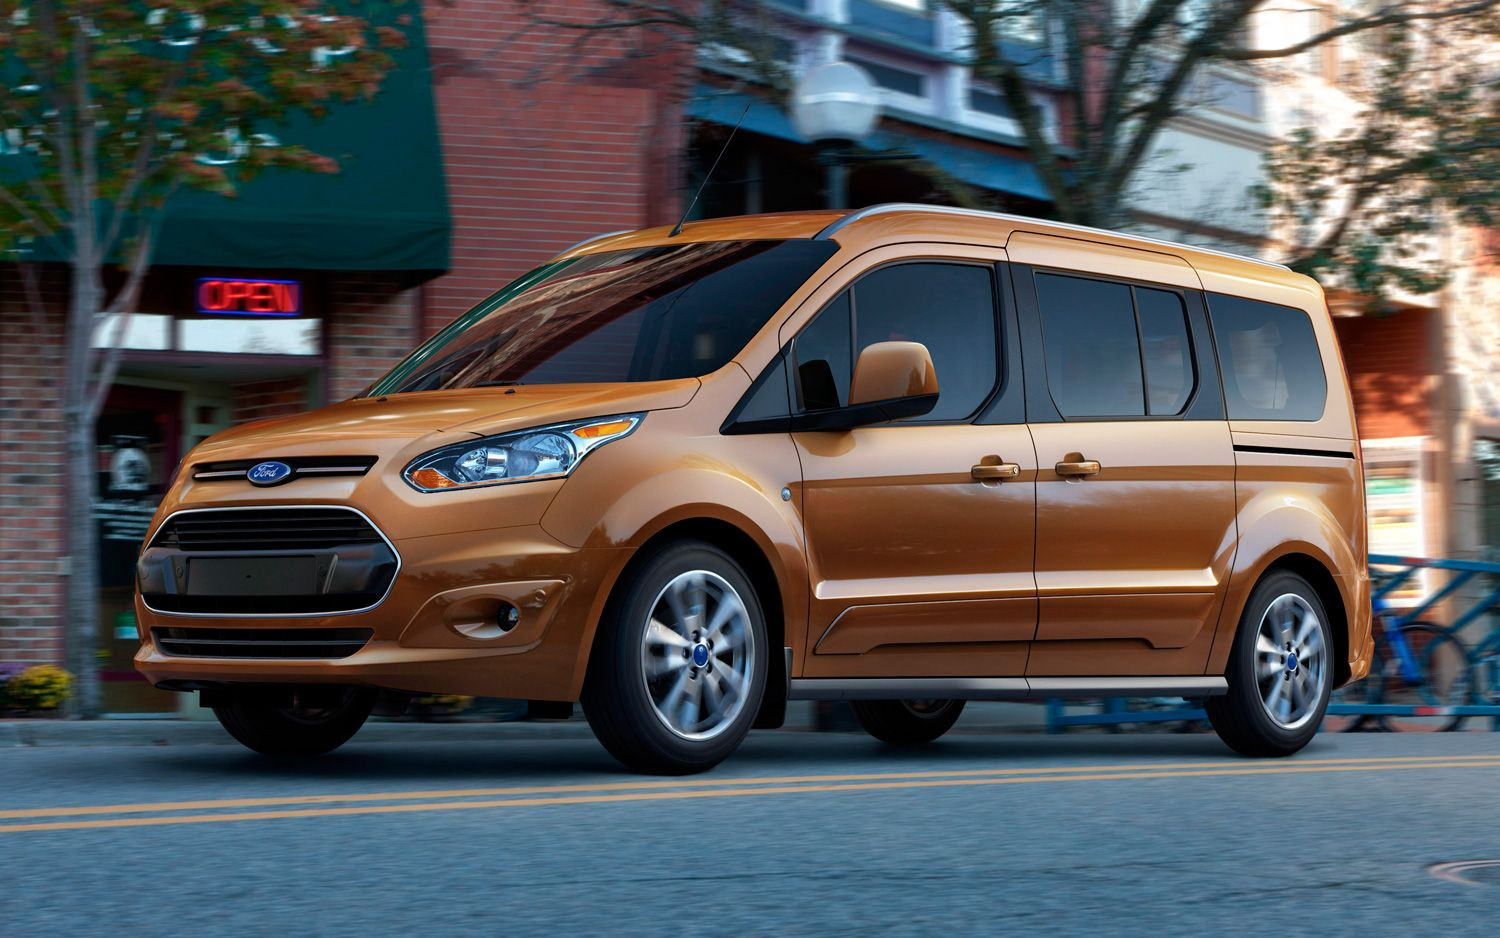 2014 Ford Transit Connect Ecoboost Wagon Gets 30 Mpg Minivan Back